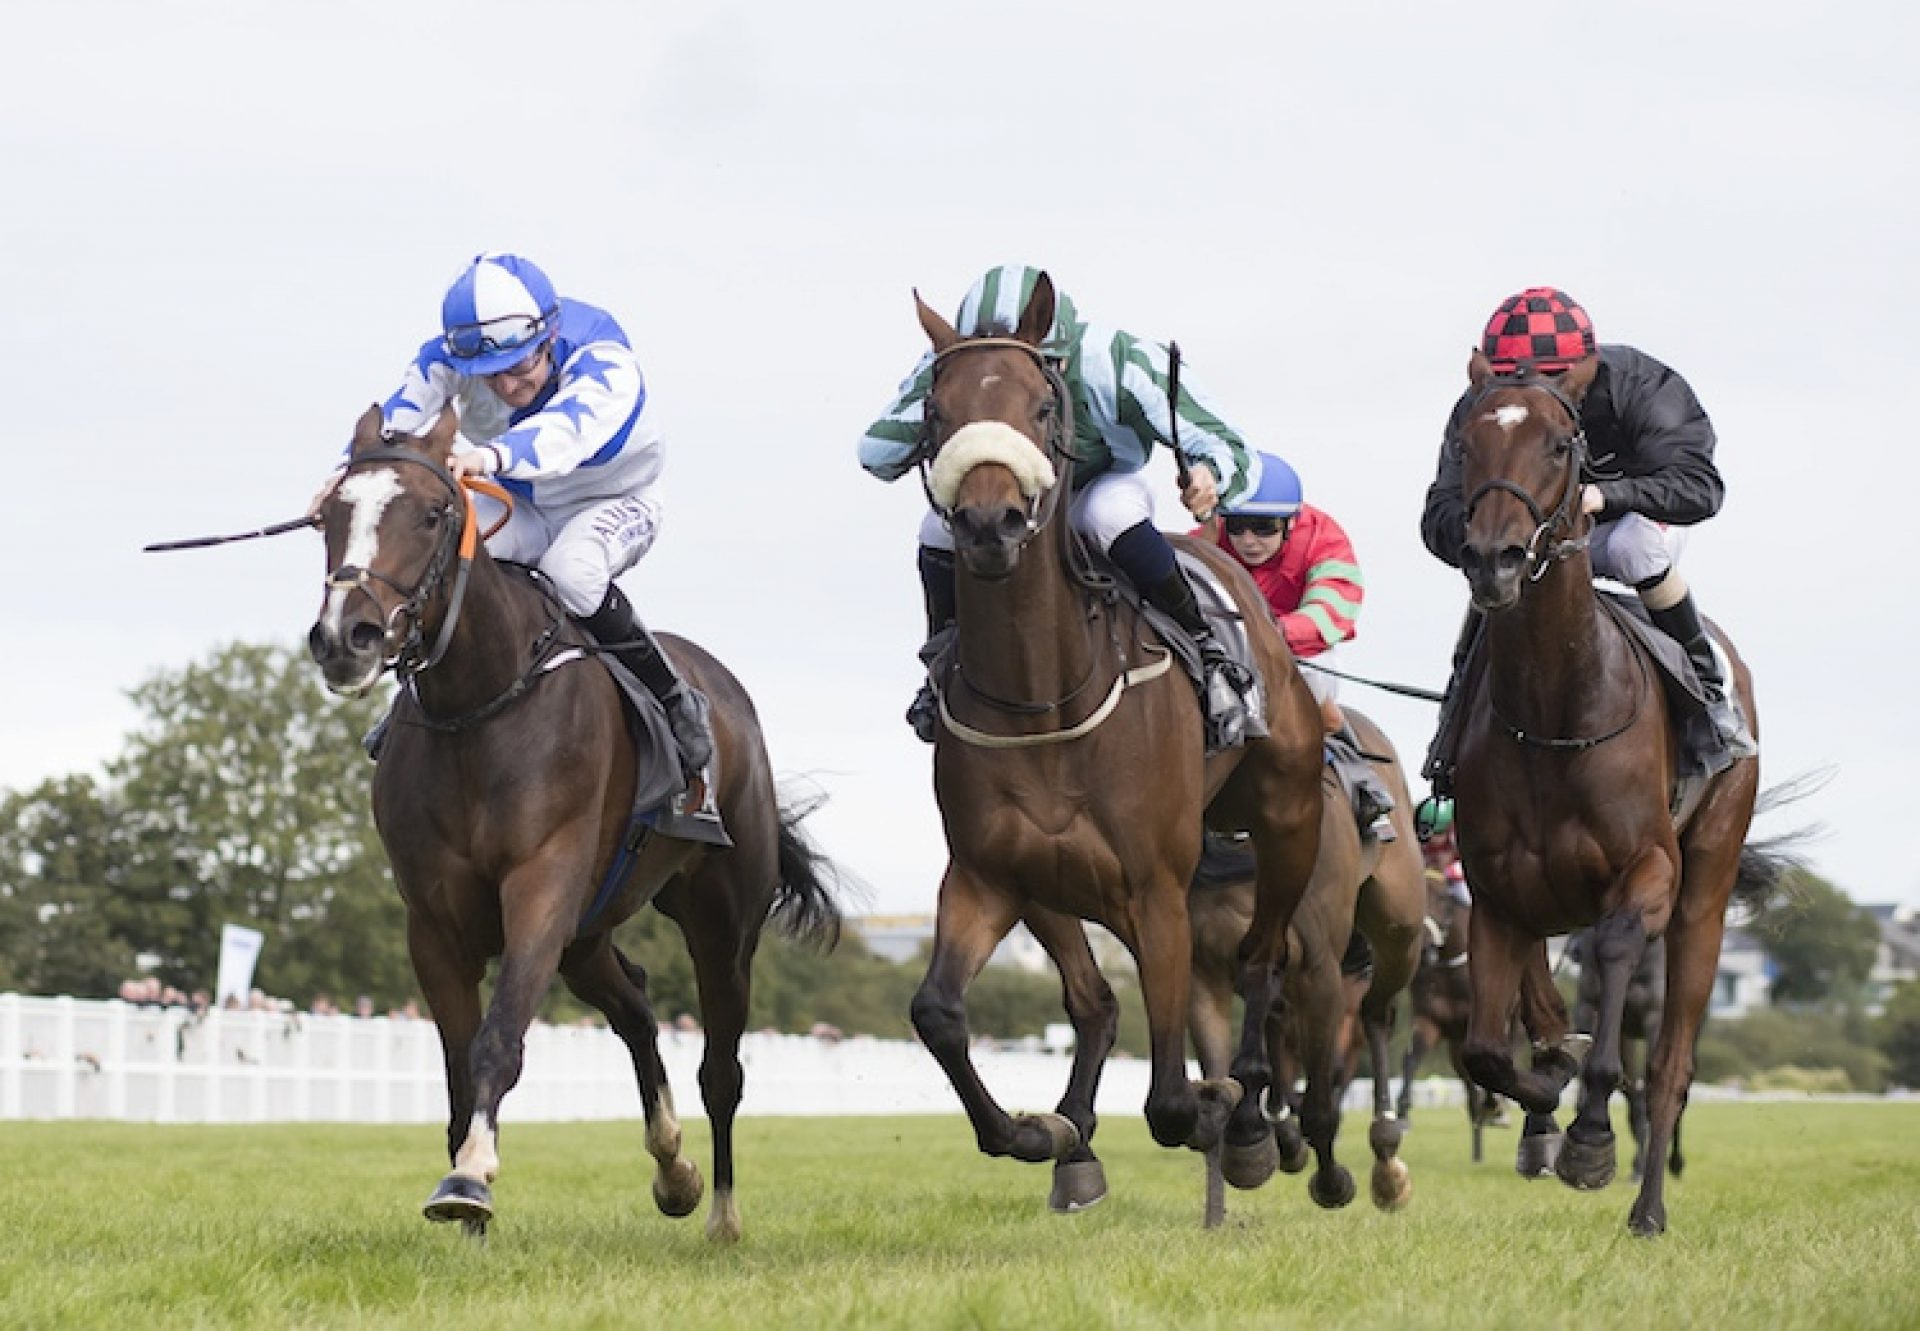 Lady Camelot (Camelot) winning at Listowel